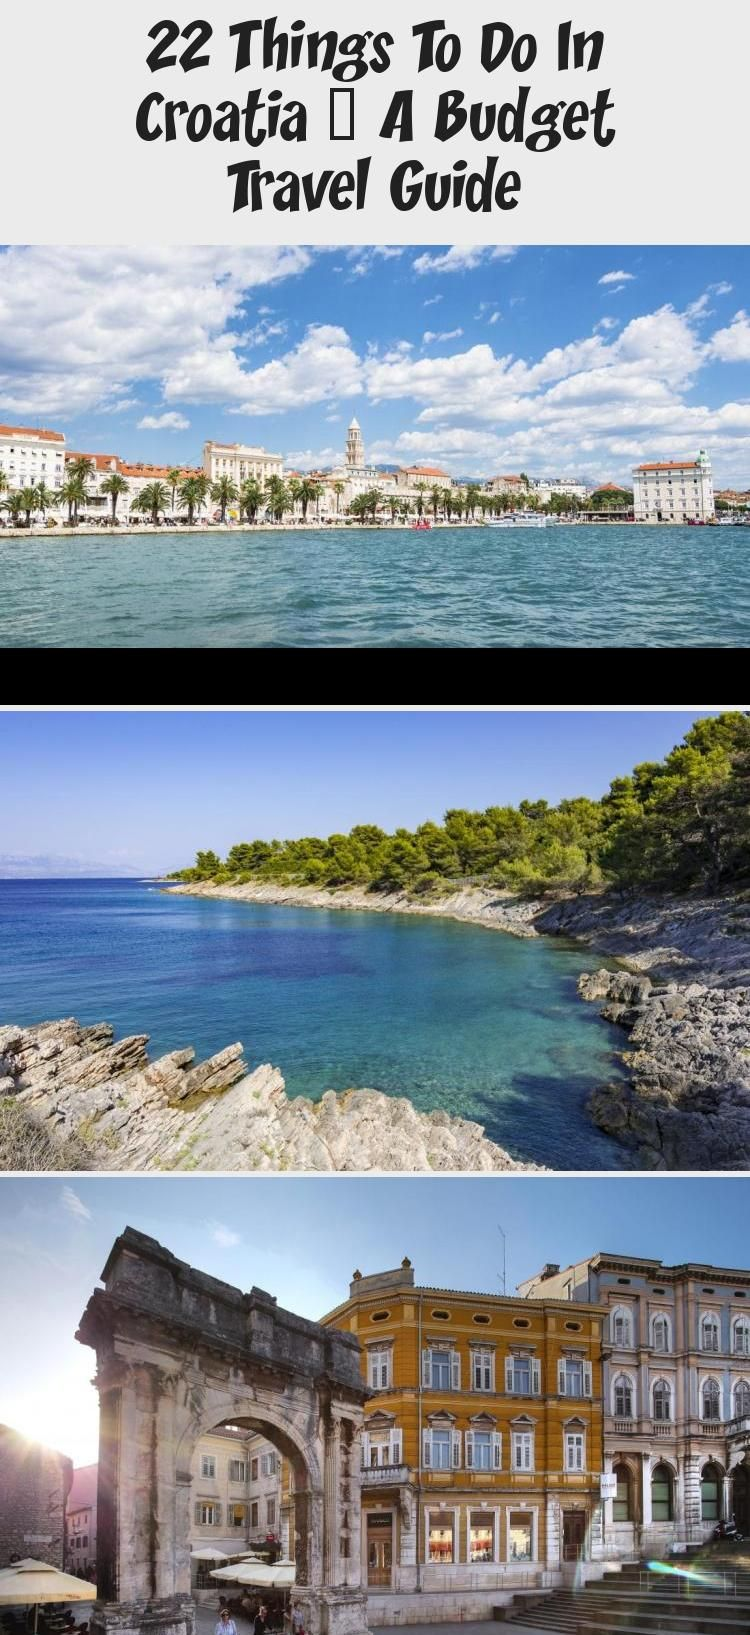 Croatia Travel The Best Places To Visit In Croatia On A Budget Dubrovnik Split Zagreb And More Awesome Destina In 2020 Family Travel Travel Cool Places To Visit